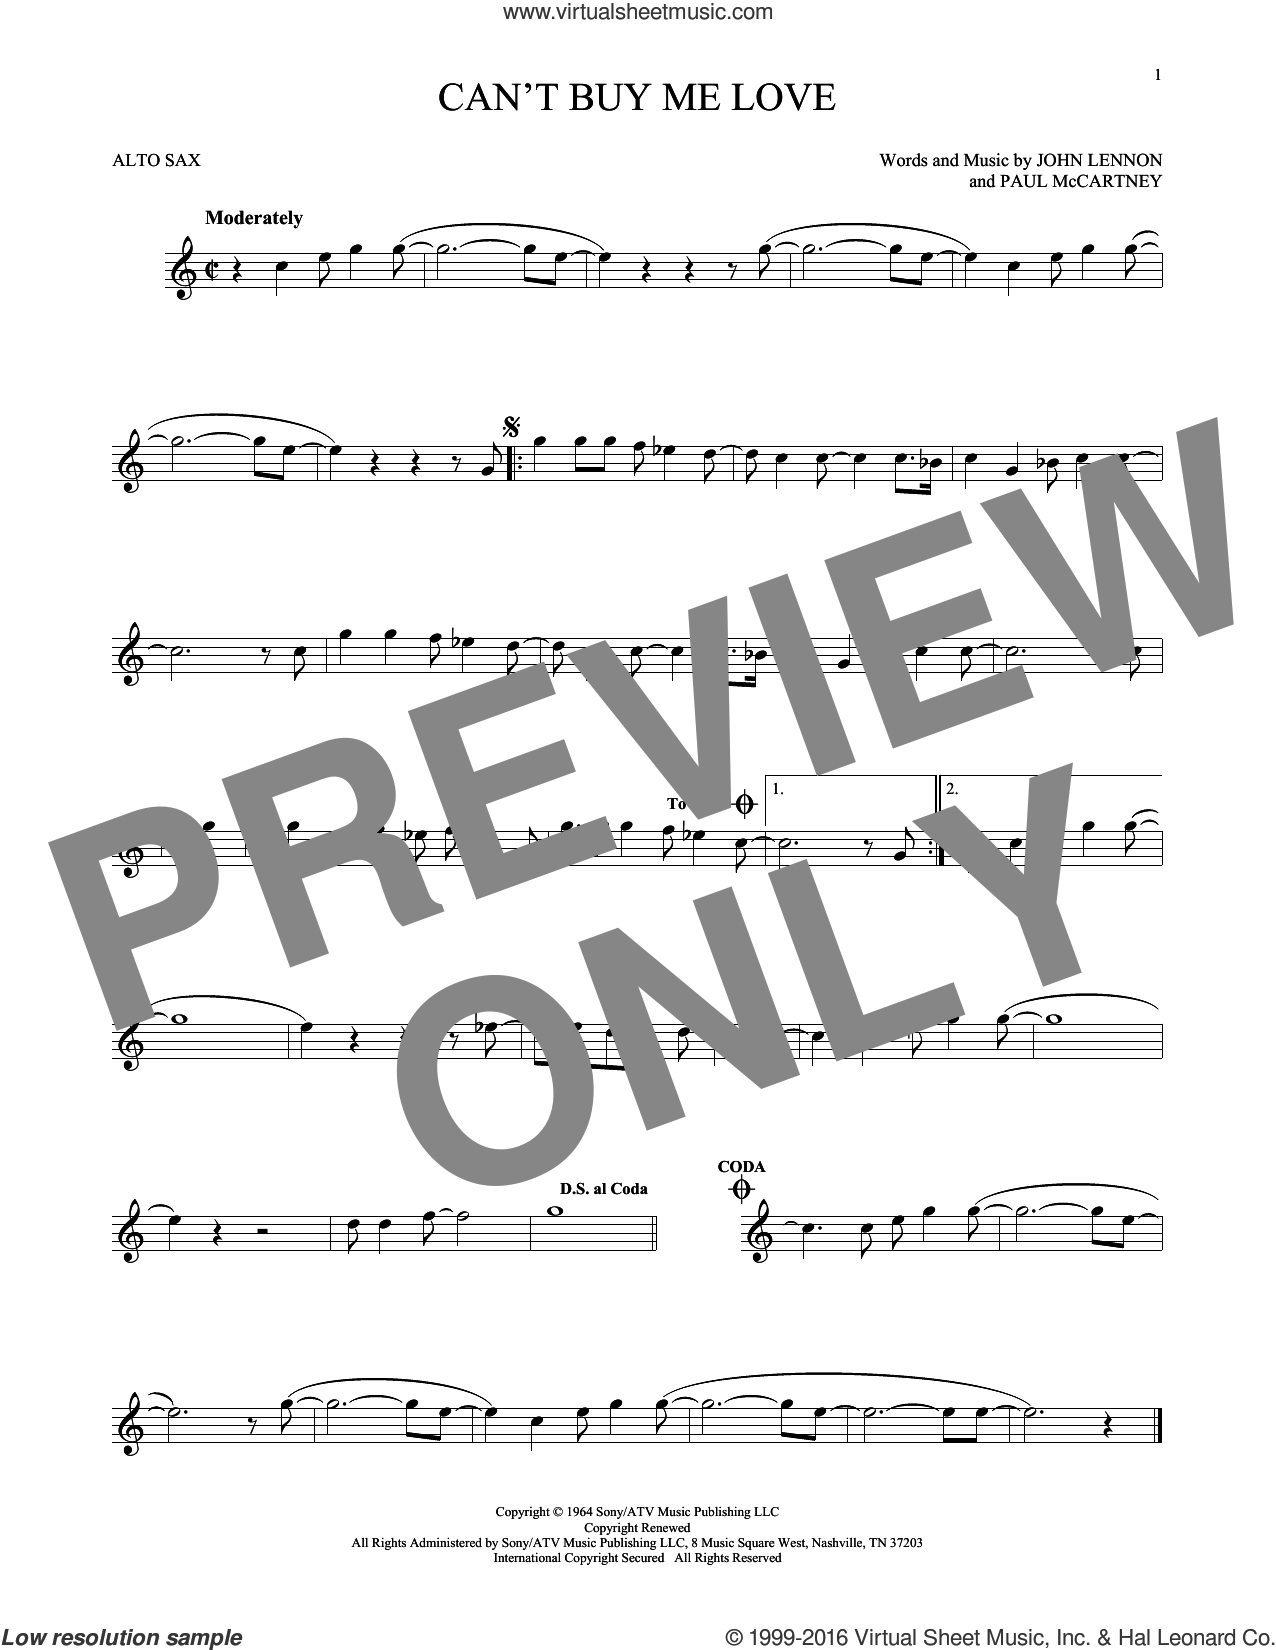 Can't Buy Me Love sheet music for alto saxophone solo by Paul McCartney, The Beatles and John Lennon. Score Image Preview.